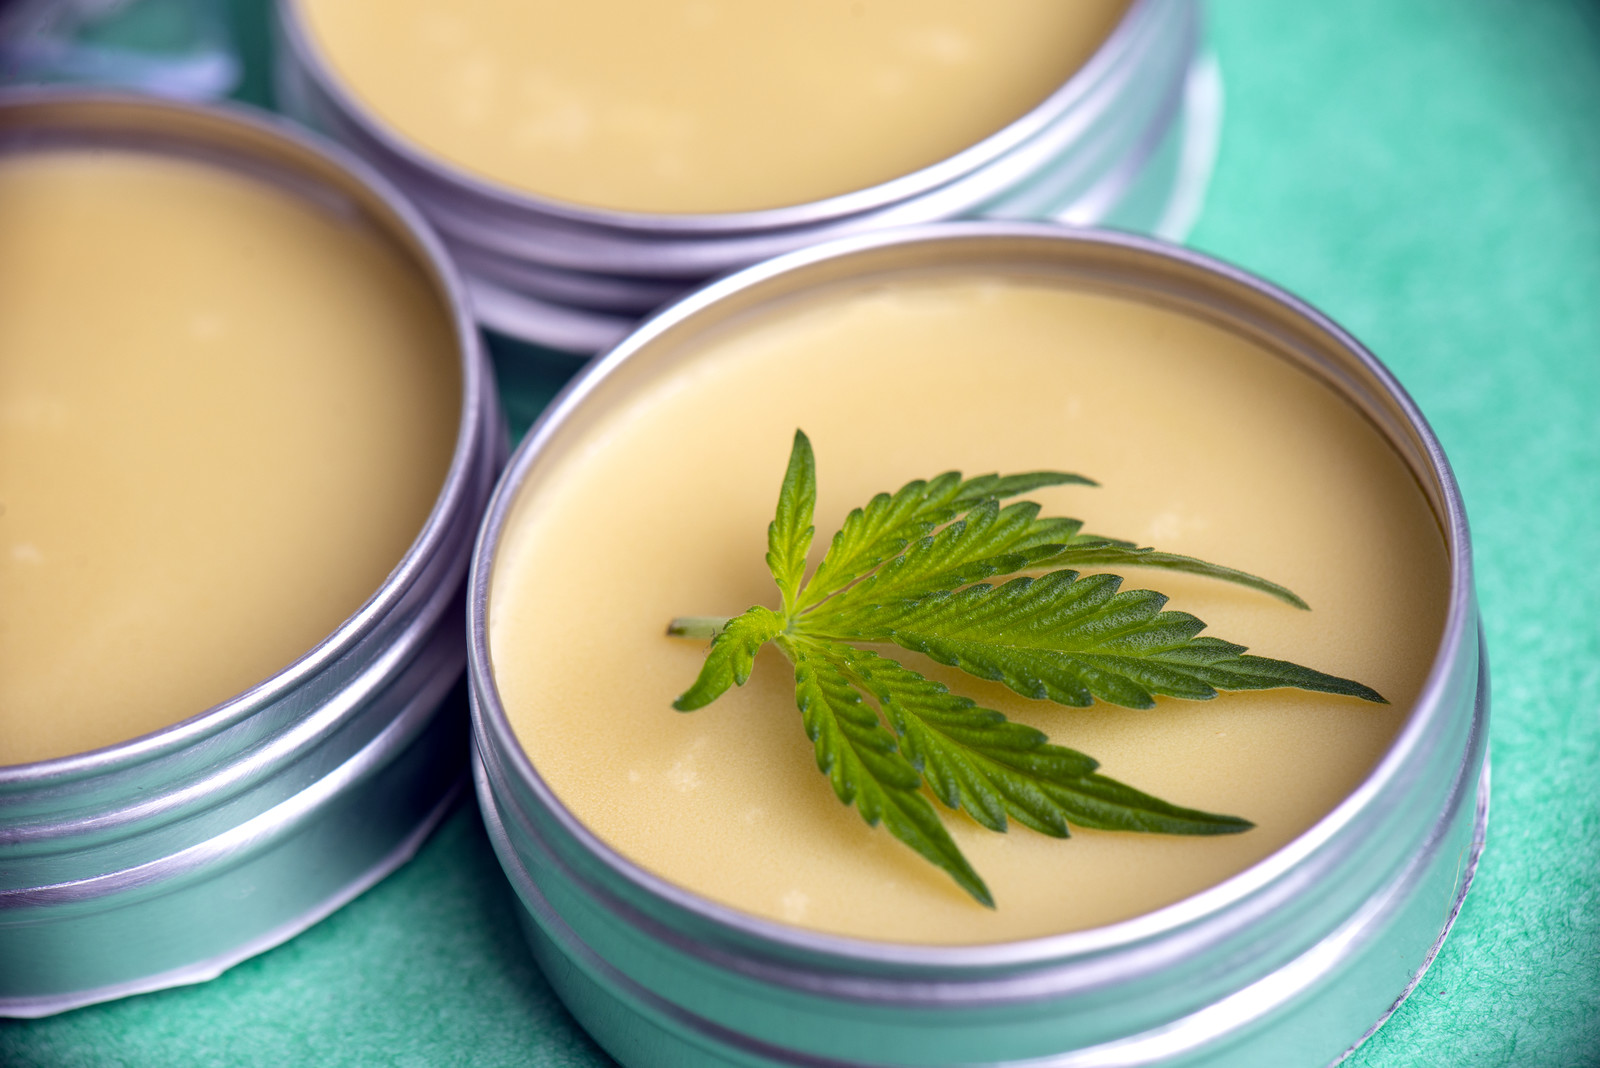 Cannabis topical lotions and oils